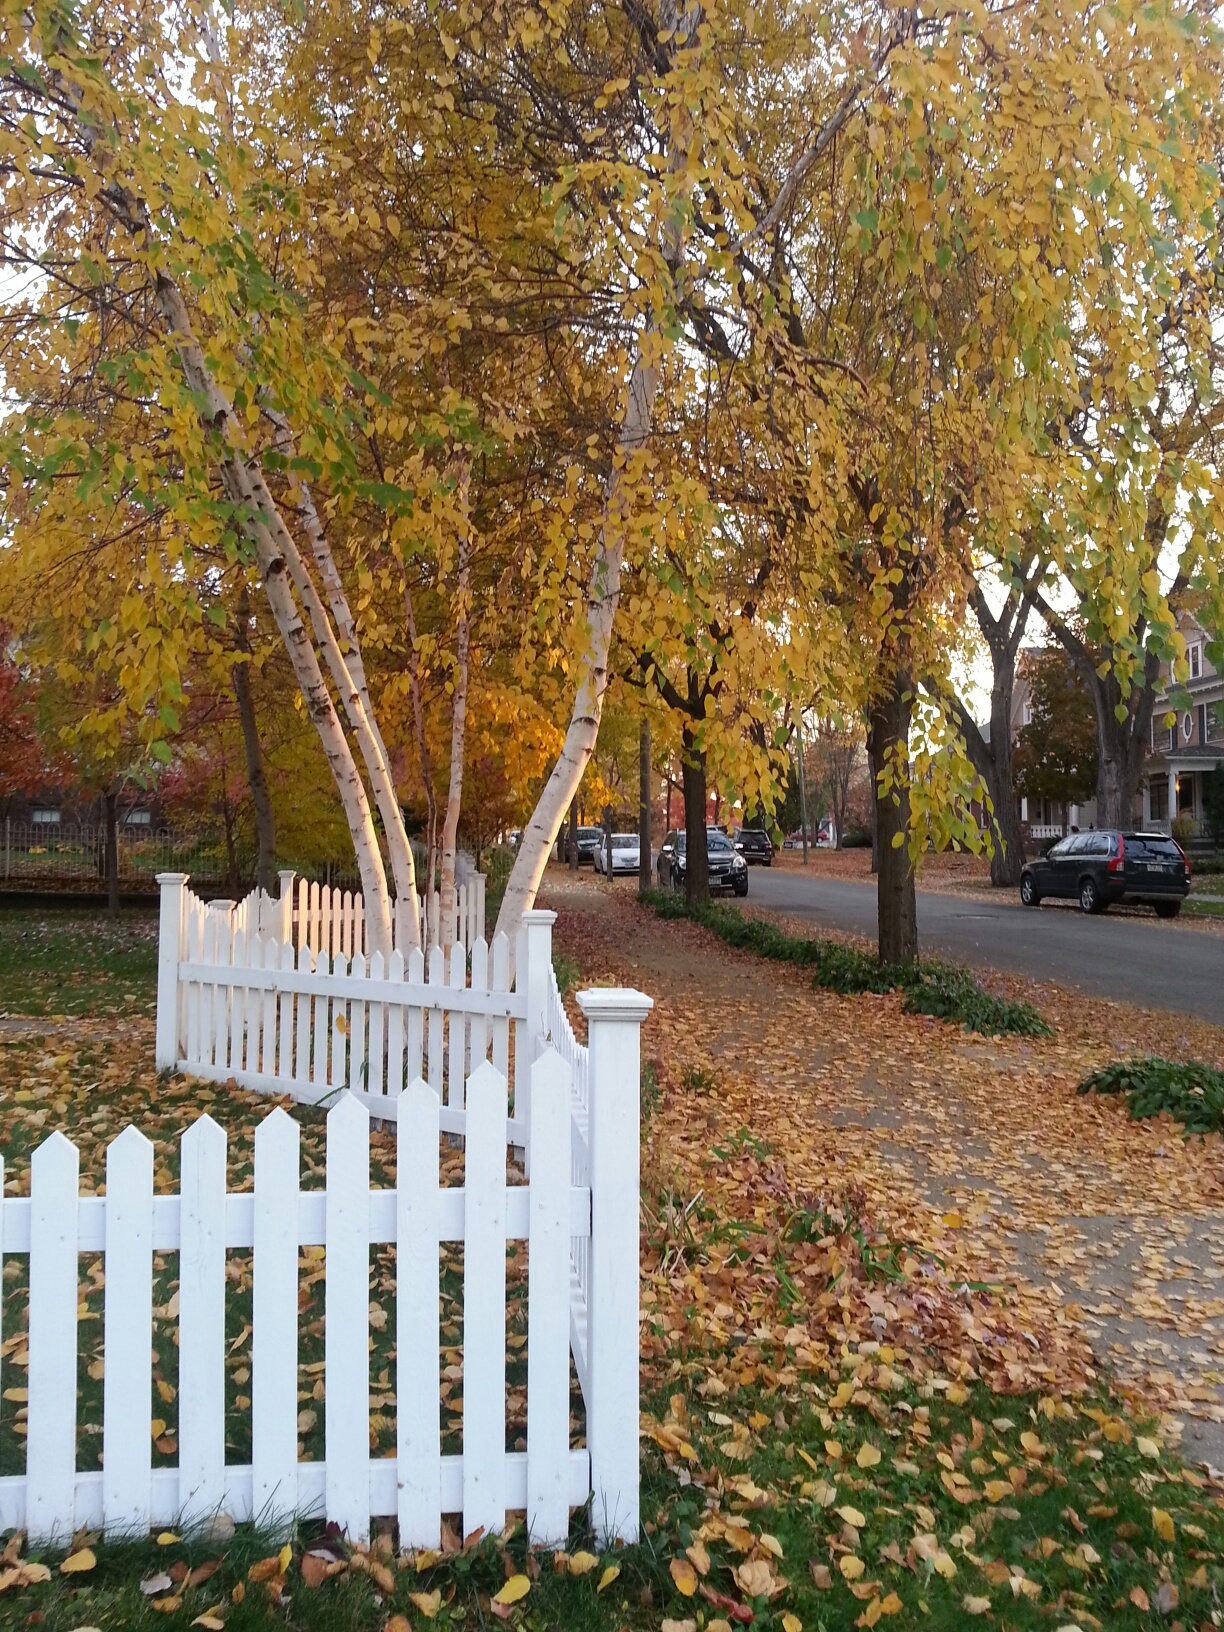 Trees and Fencing in Autumn